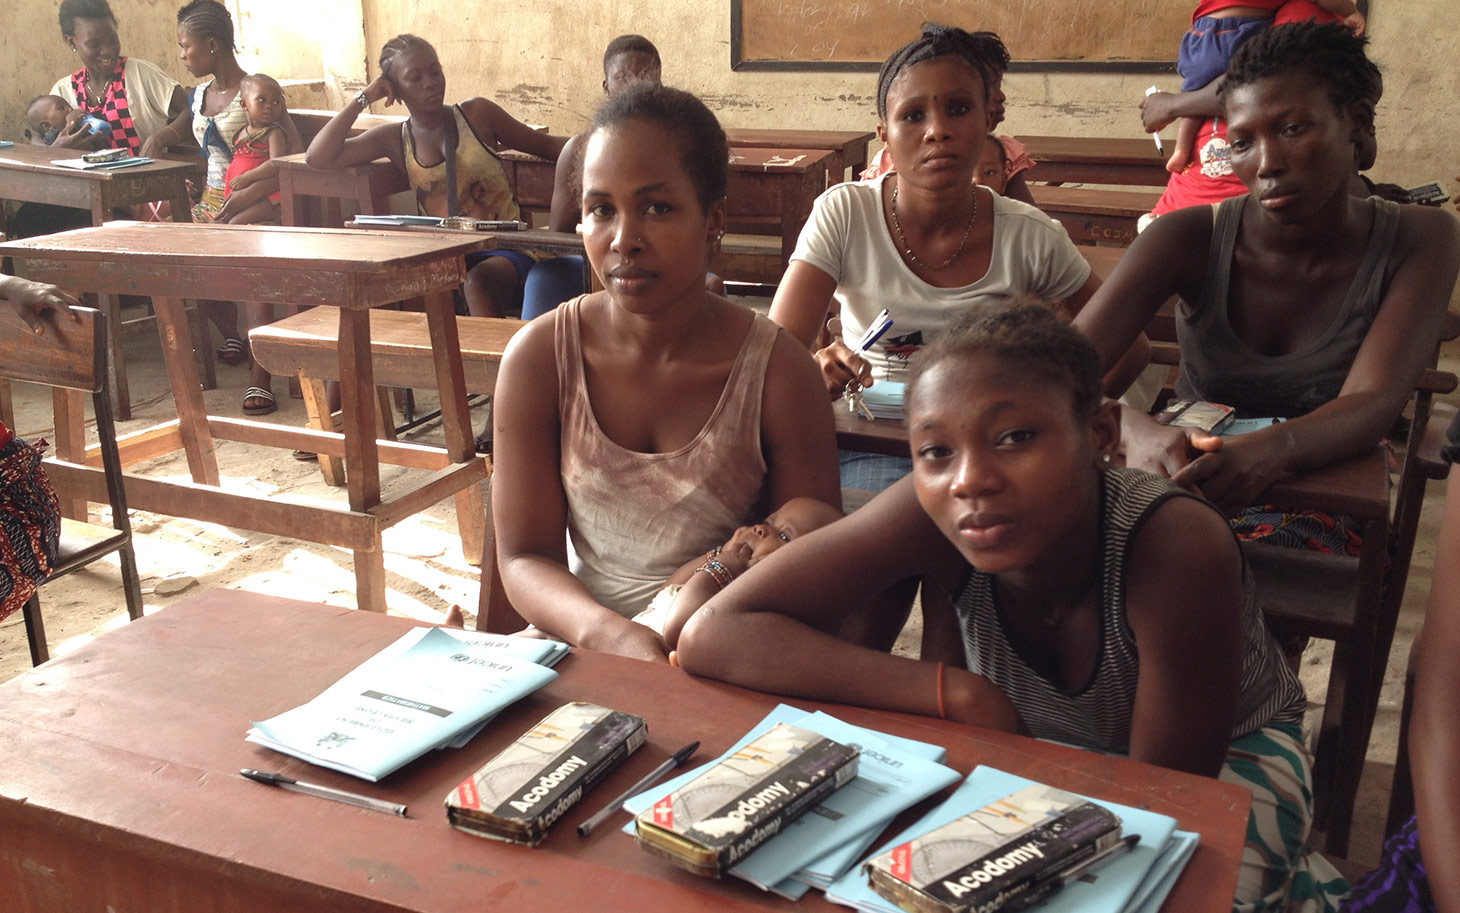 Sierra Leone: Pregnant schoolgirls excluded from school and banned from exams